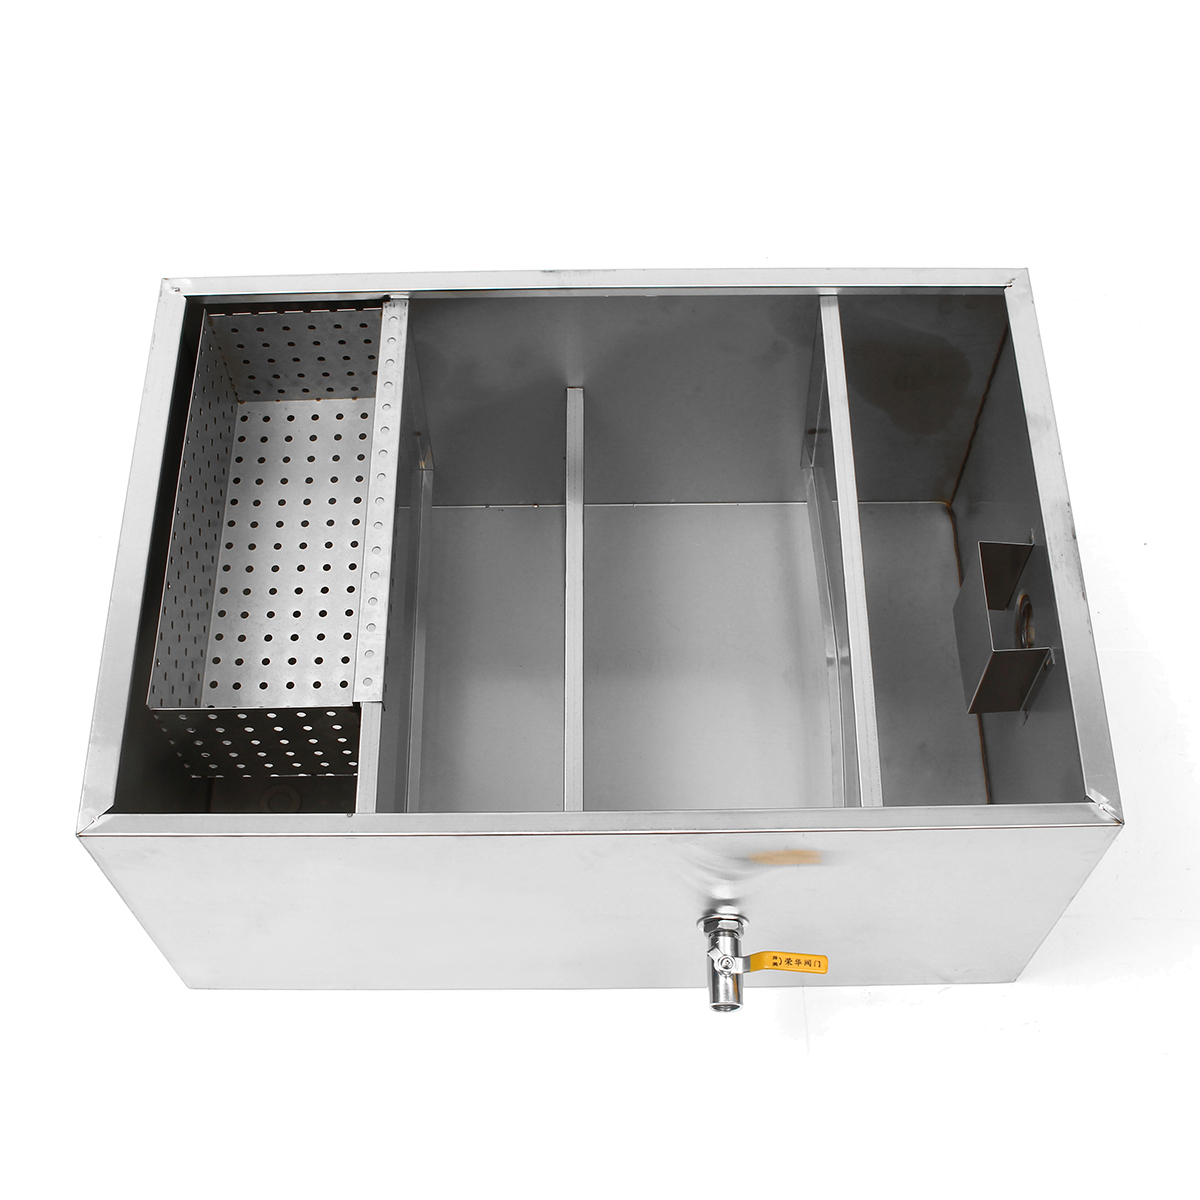 12L Stainless Steel Grease Trap Interceptor Filter Commercial Interceptor Grease Trap